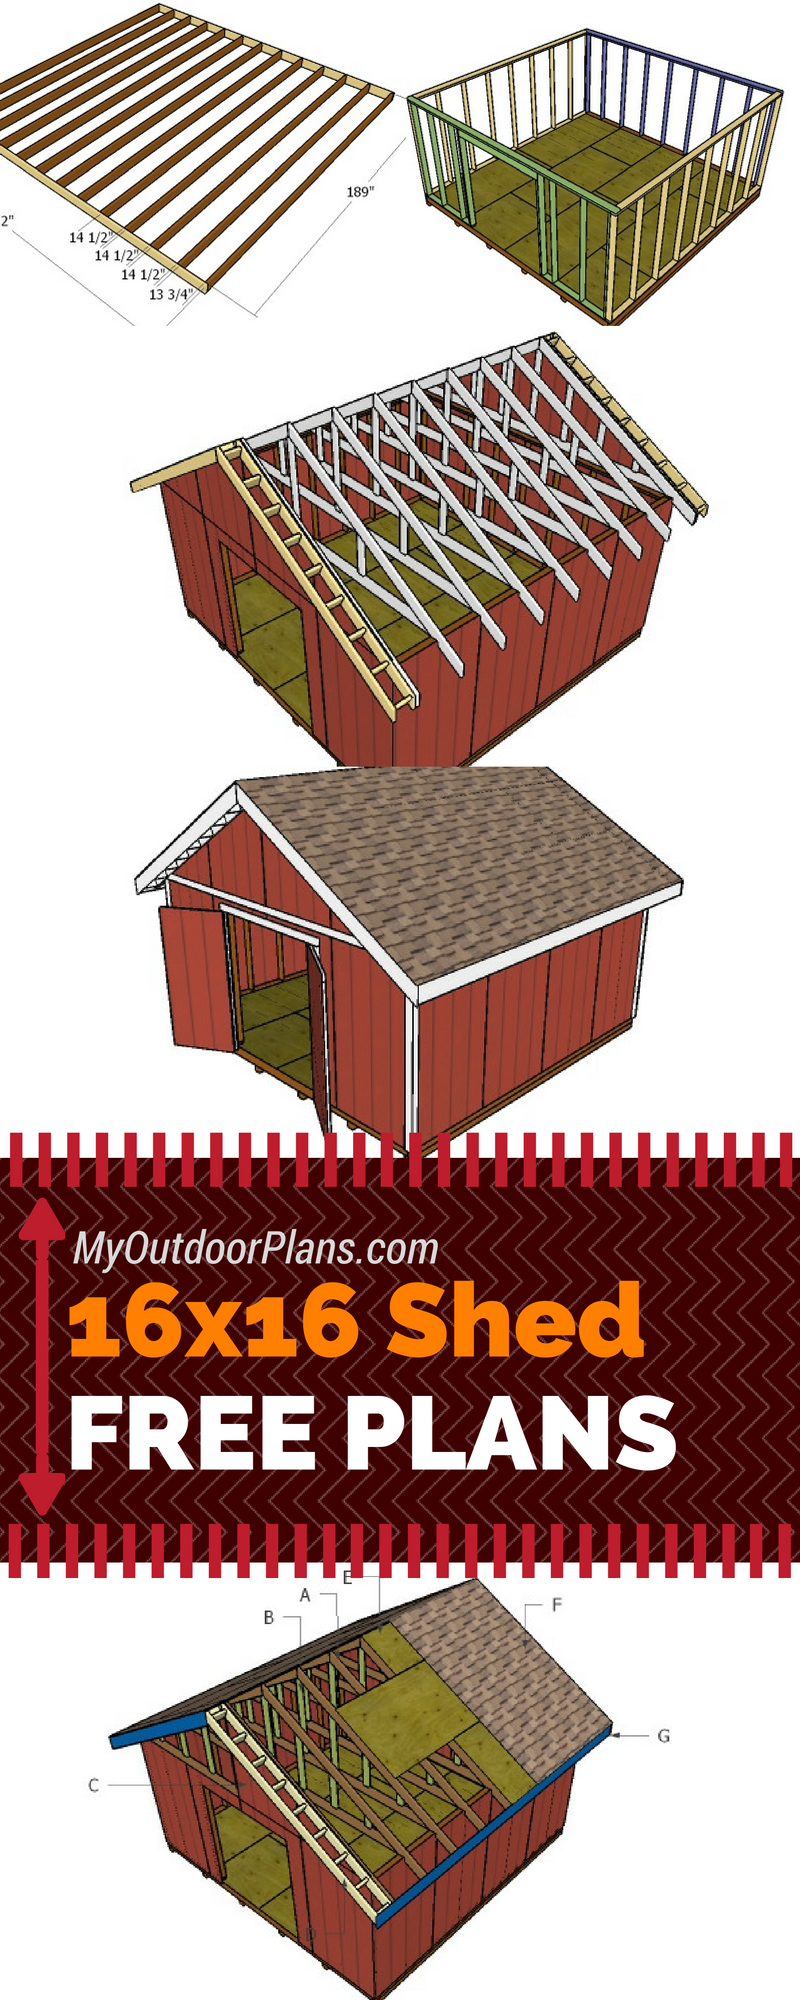 free plans for you to learn how to build a 16x16 shed with a gable